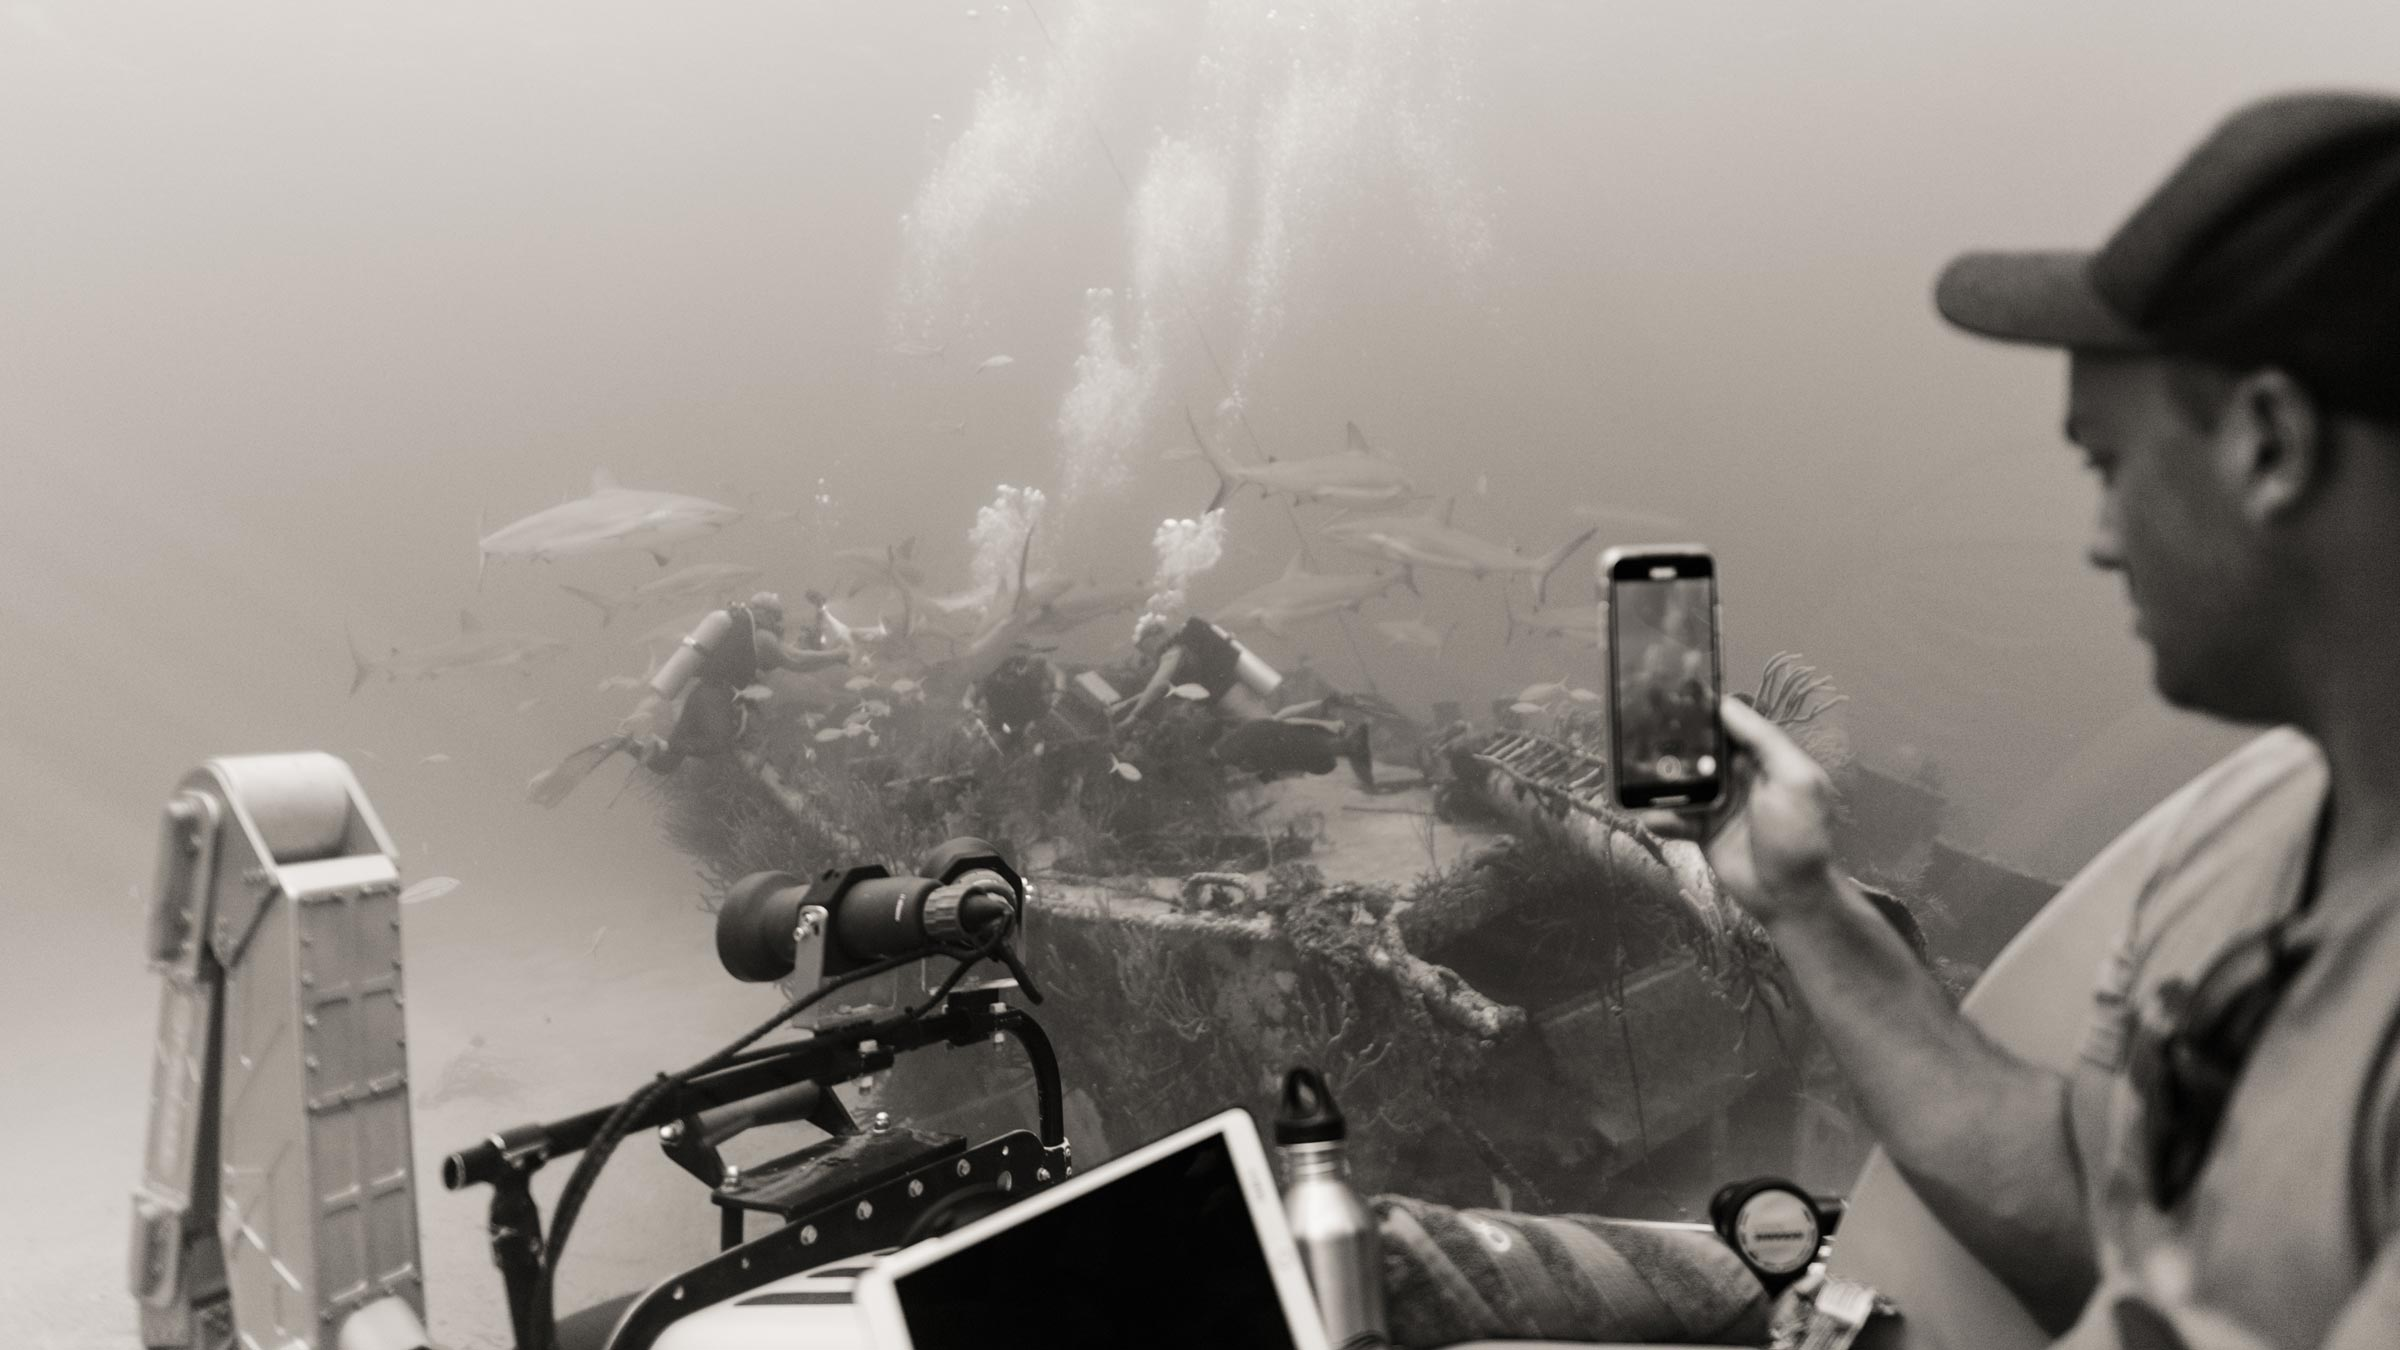 Diving to a wreck in a Triton sub